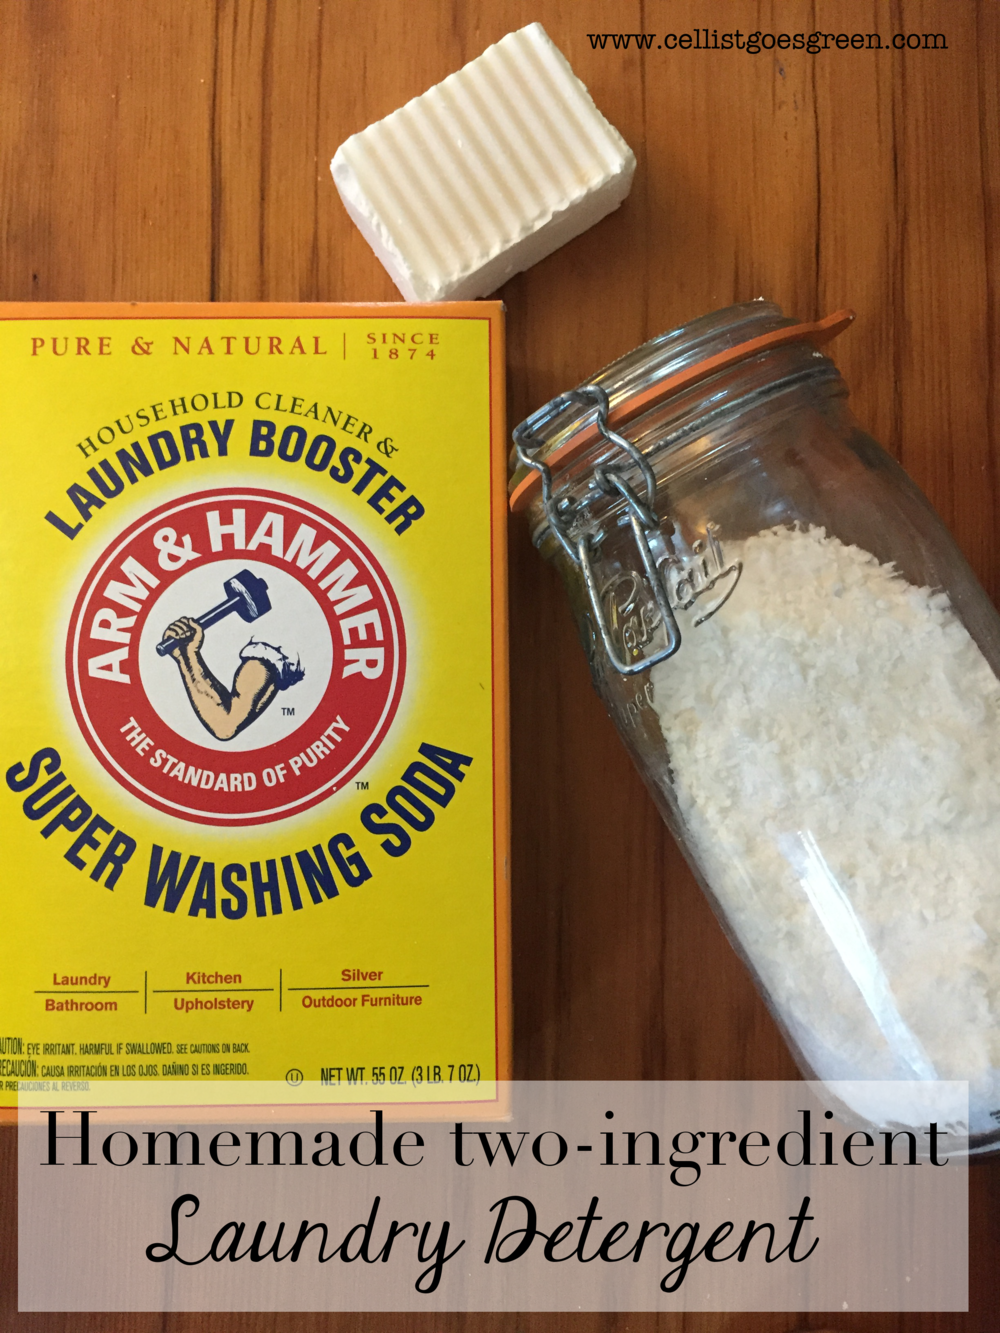 Homemade two-ingredient laundry detergent: A zero waste, plastic free option | Cellist Goes Green